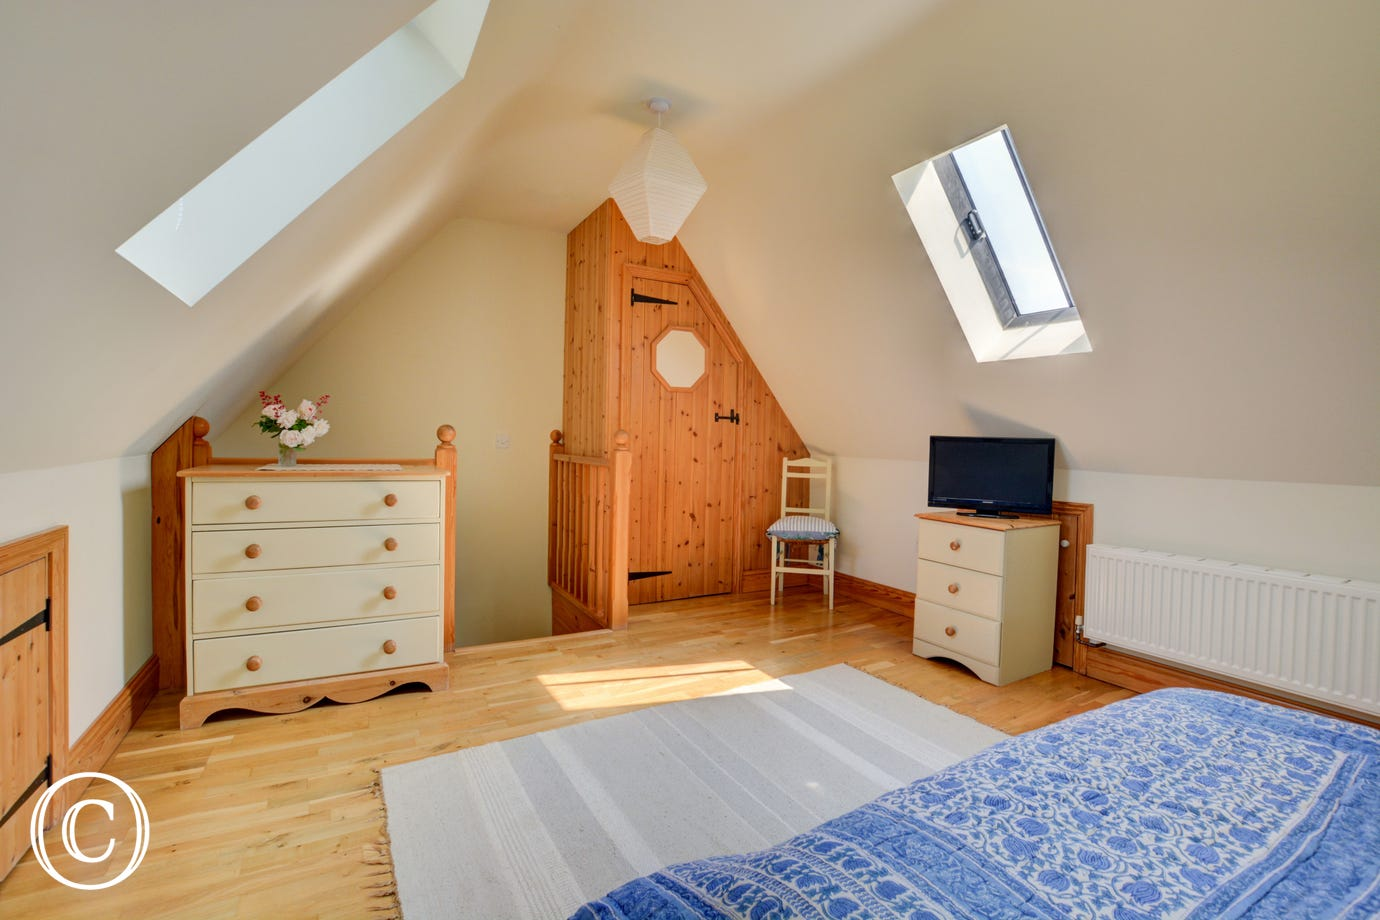 Velux windows and wooden flooring covered with a striped rug.